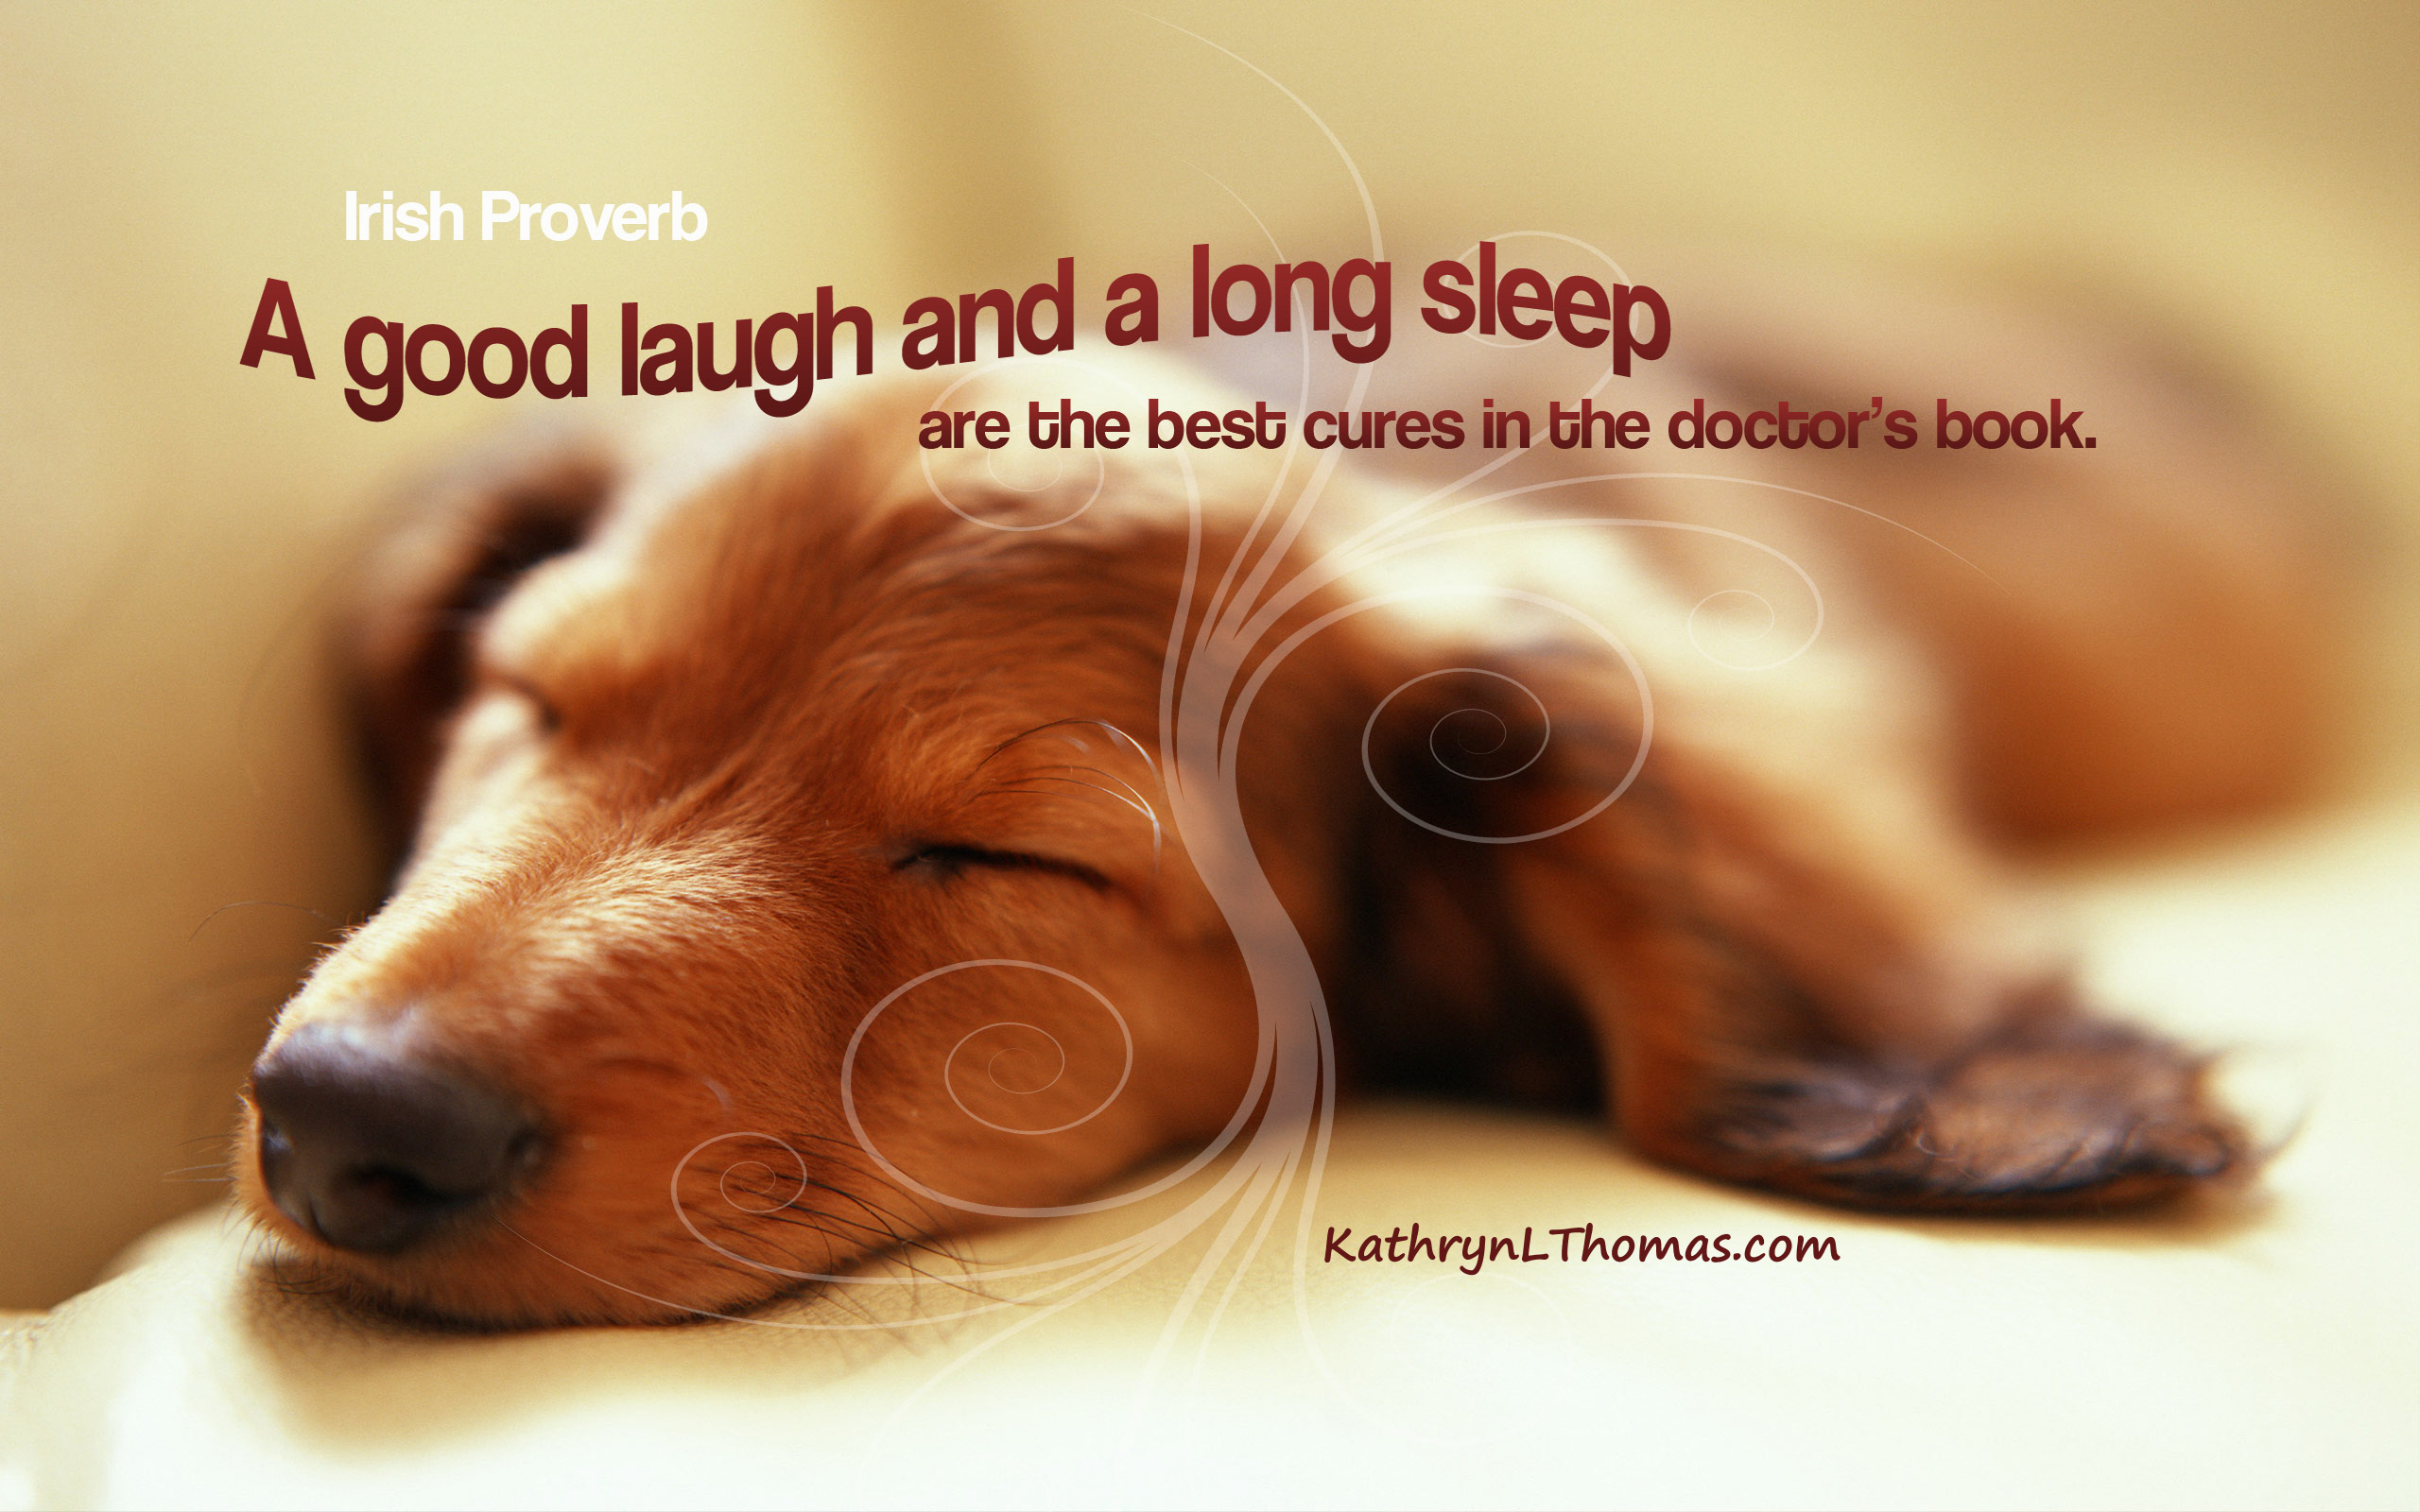 Irish Proverb about a good laugh